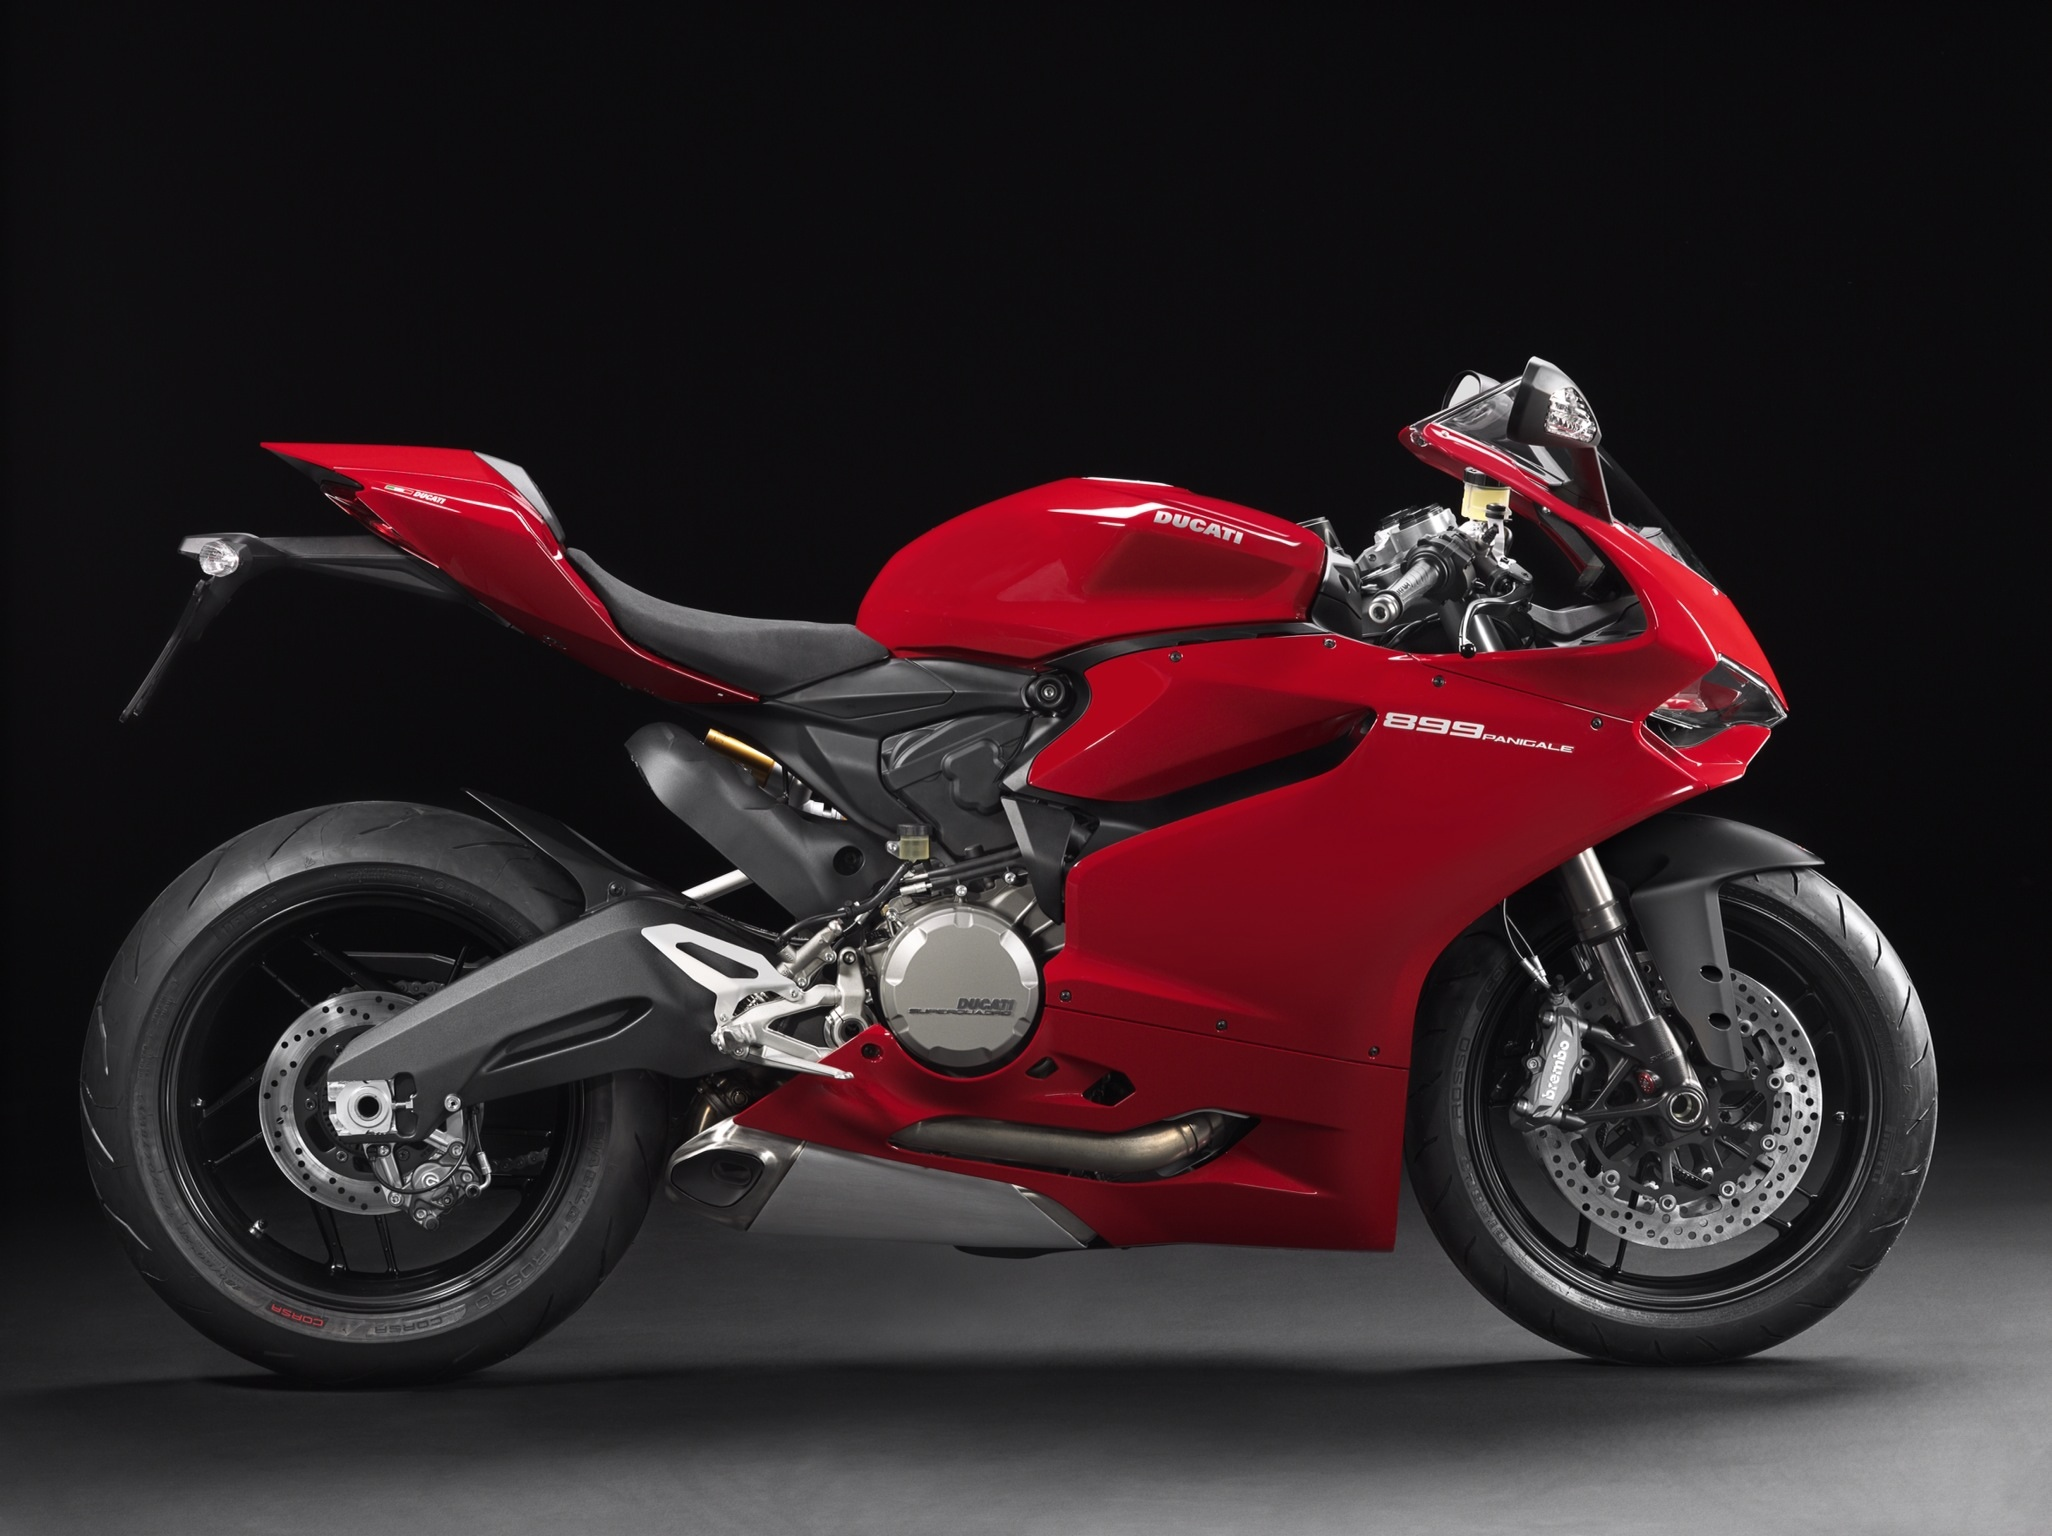 2014 ducati 899 panigale breaks cover asphalt rubber. Black Bedroom Furniture Sets. Home Design Ideas